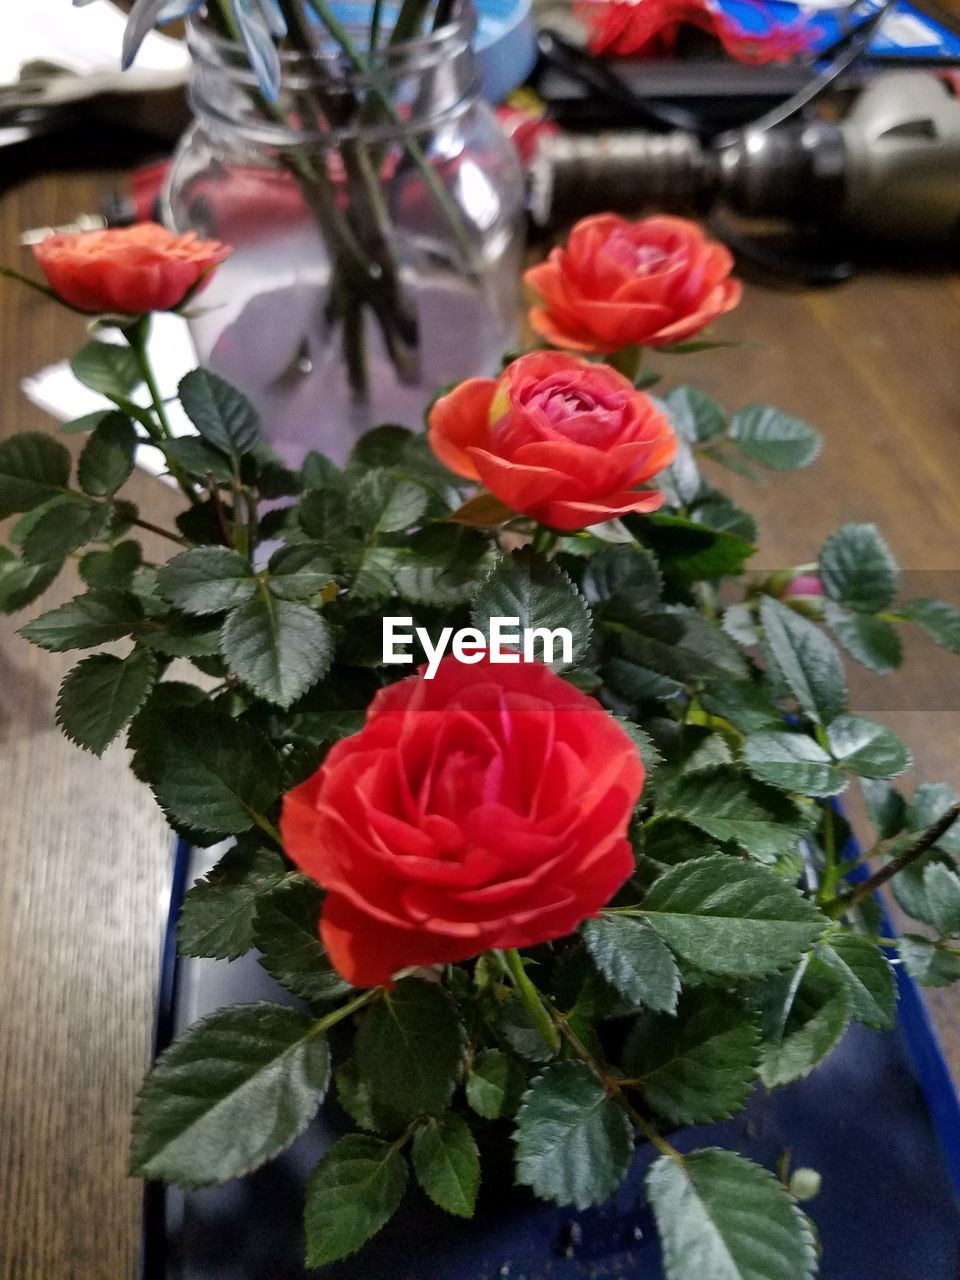 flowering plant, flower, plant, beauty in nature, rose, rose - flower, plant part, table, freshness, fragility, leaf, close-up, vulnerability, petal, flower head, indoors, red, inflorescence, nature, no people, flower arrangement, bouquet, bunch of flowers